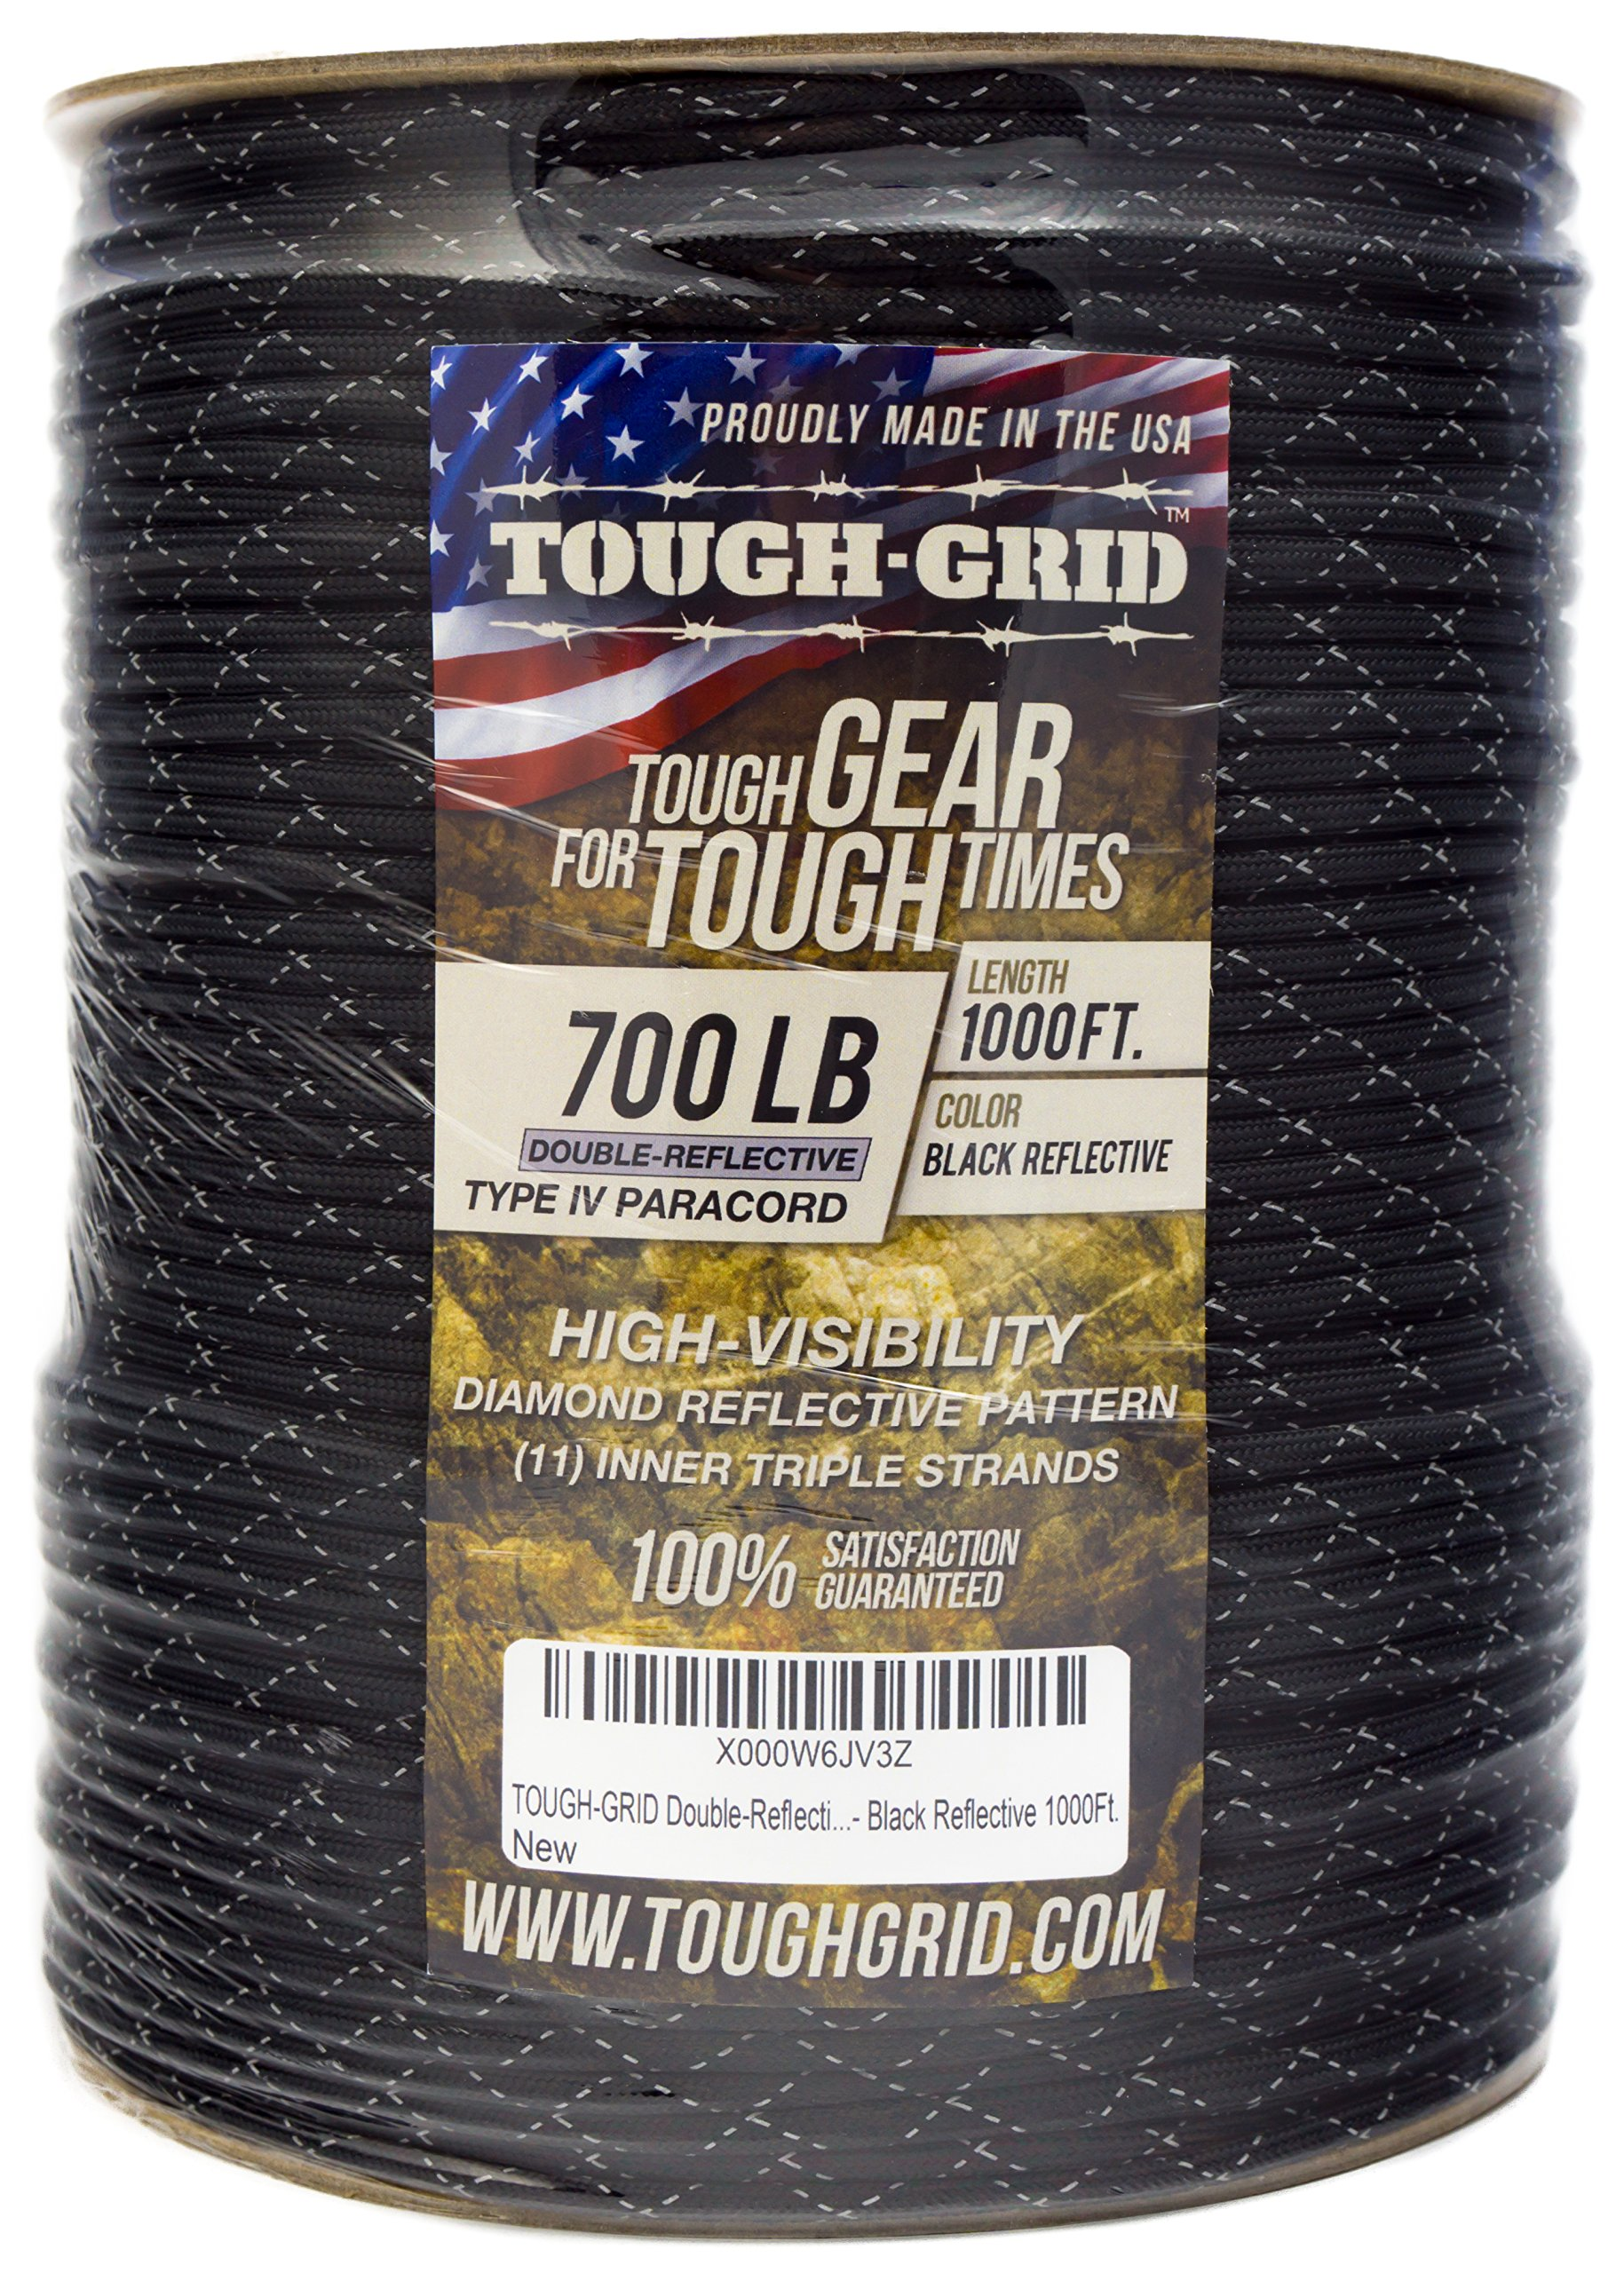 TOUGH-GRID New 700lb Double-Reflective Paracord/Parachute Cord - 2 Vibrant Retro-Reflective Strands for The Ultimate High-Visibility Cord - 100% Nylon - Made in USA. - 100Ft. Black Reflective by TOUGH-GRID (Image #7)